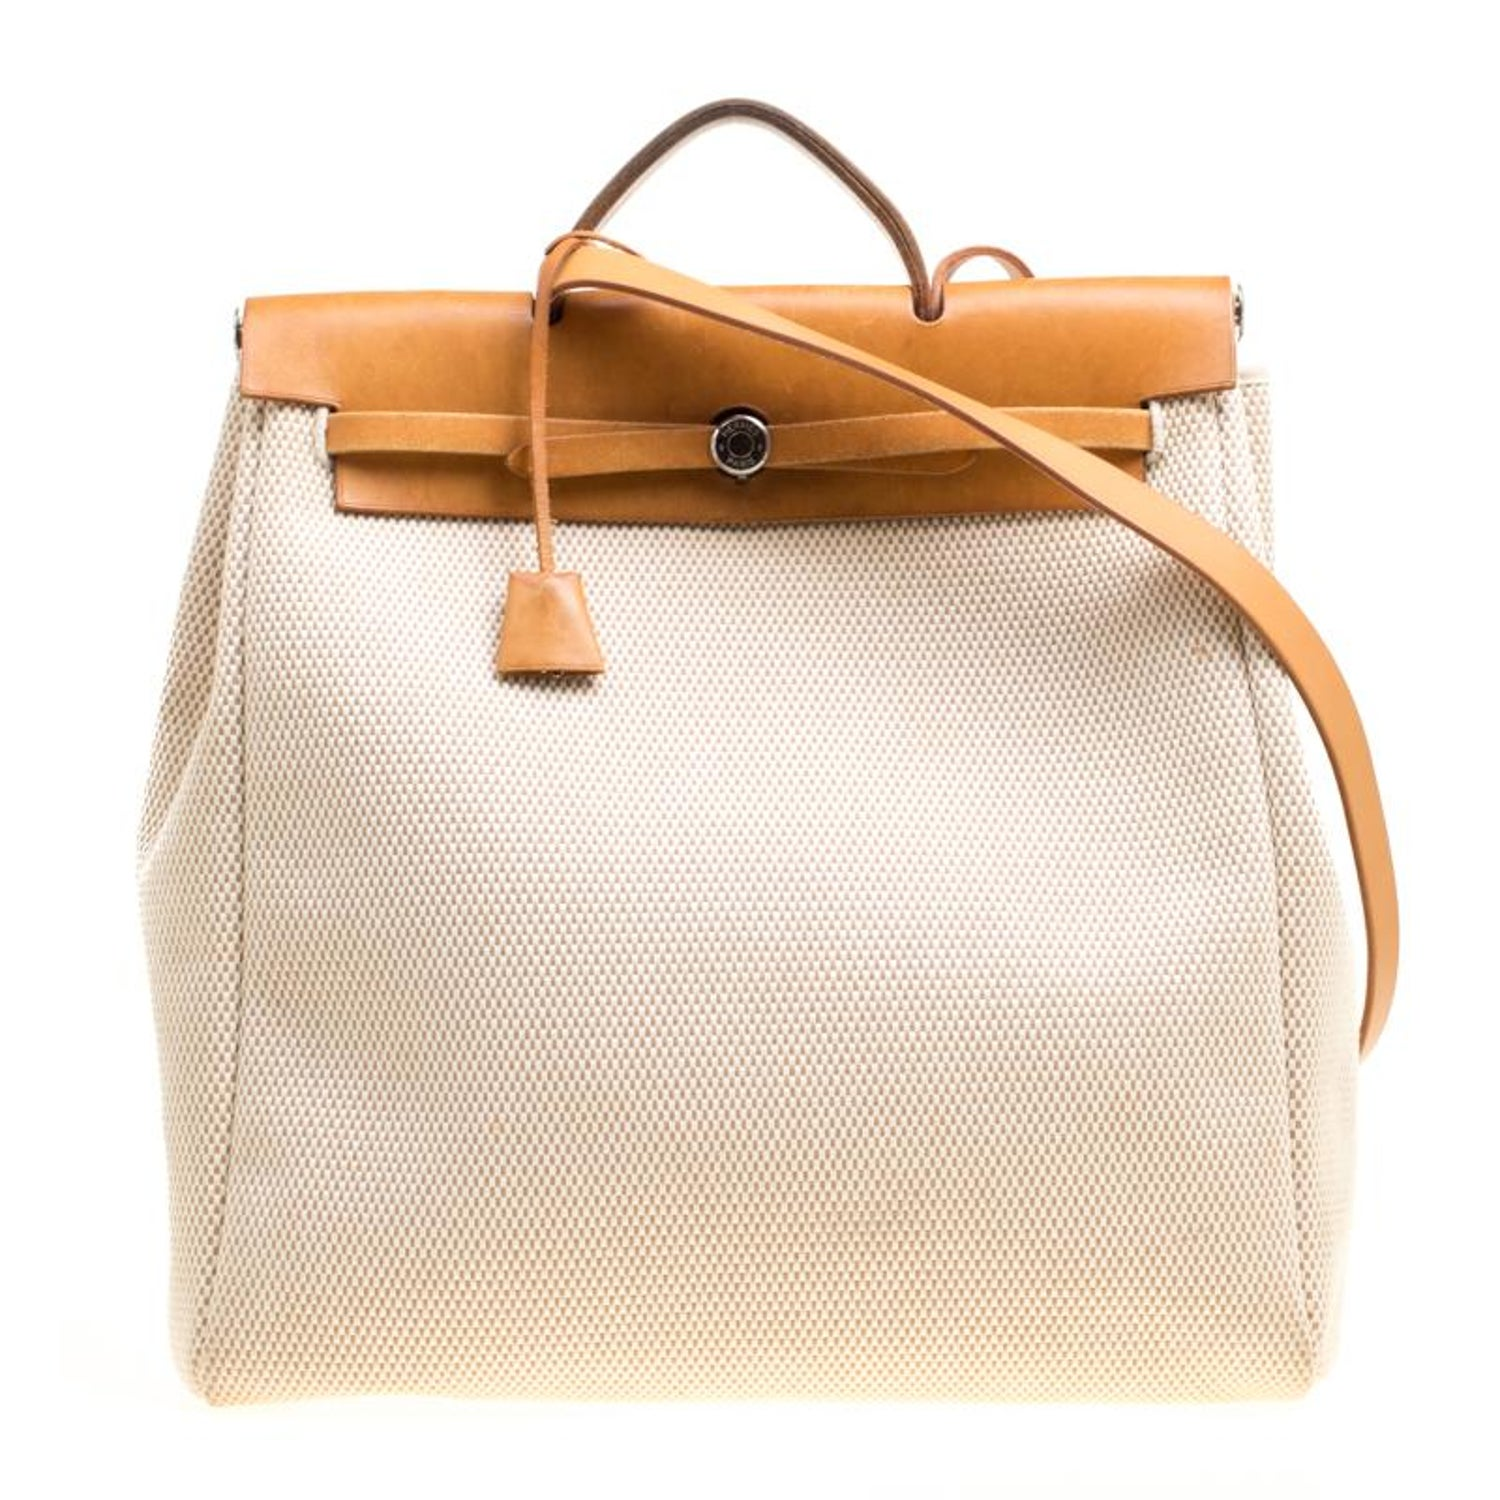 34ff6fa611 Hermes Dark Tan Beige Leather and Canvas Herbag Zip 39 Bag For Sale at  1stdibs